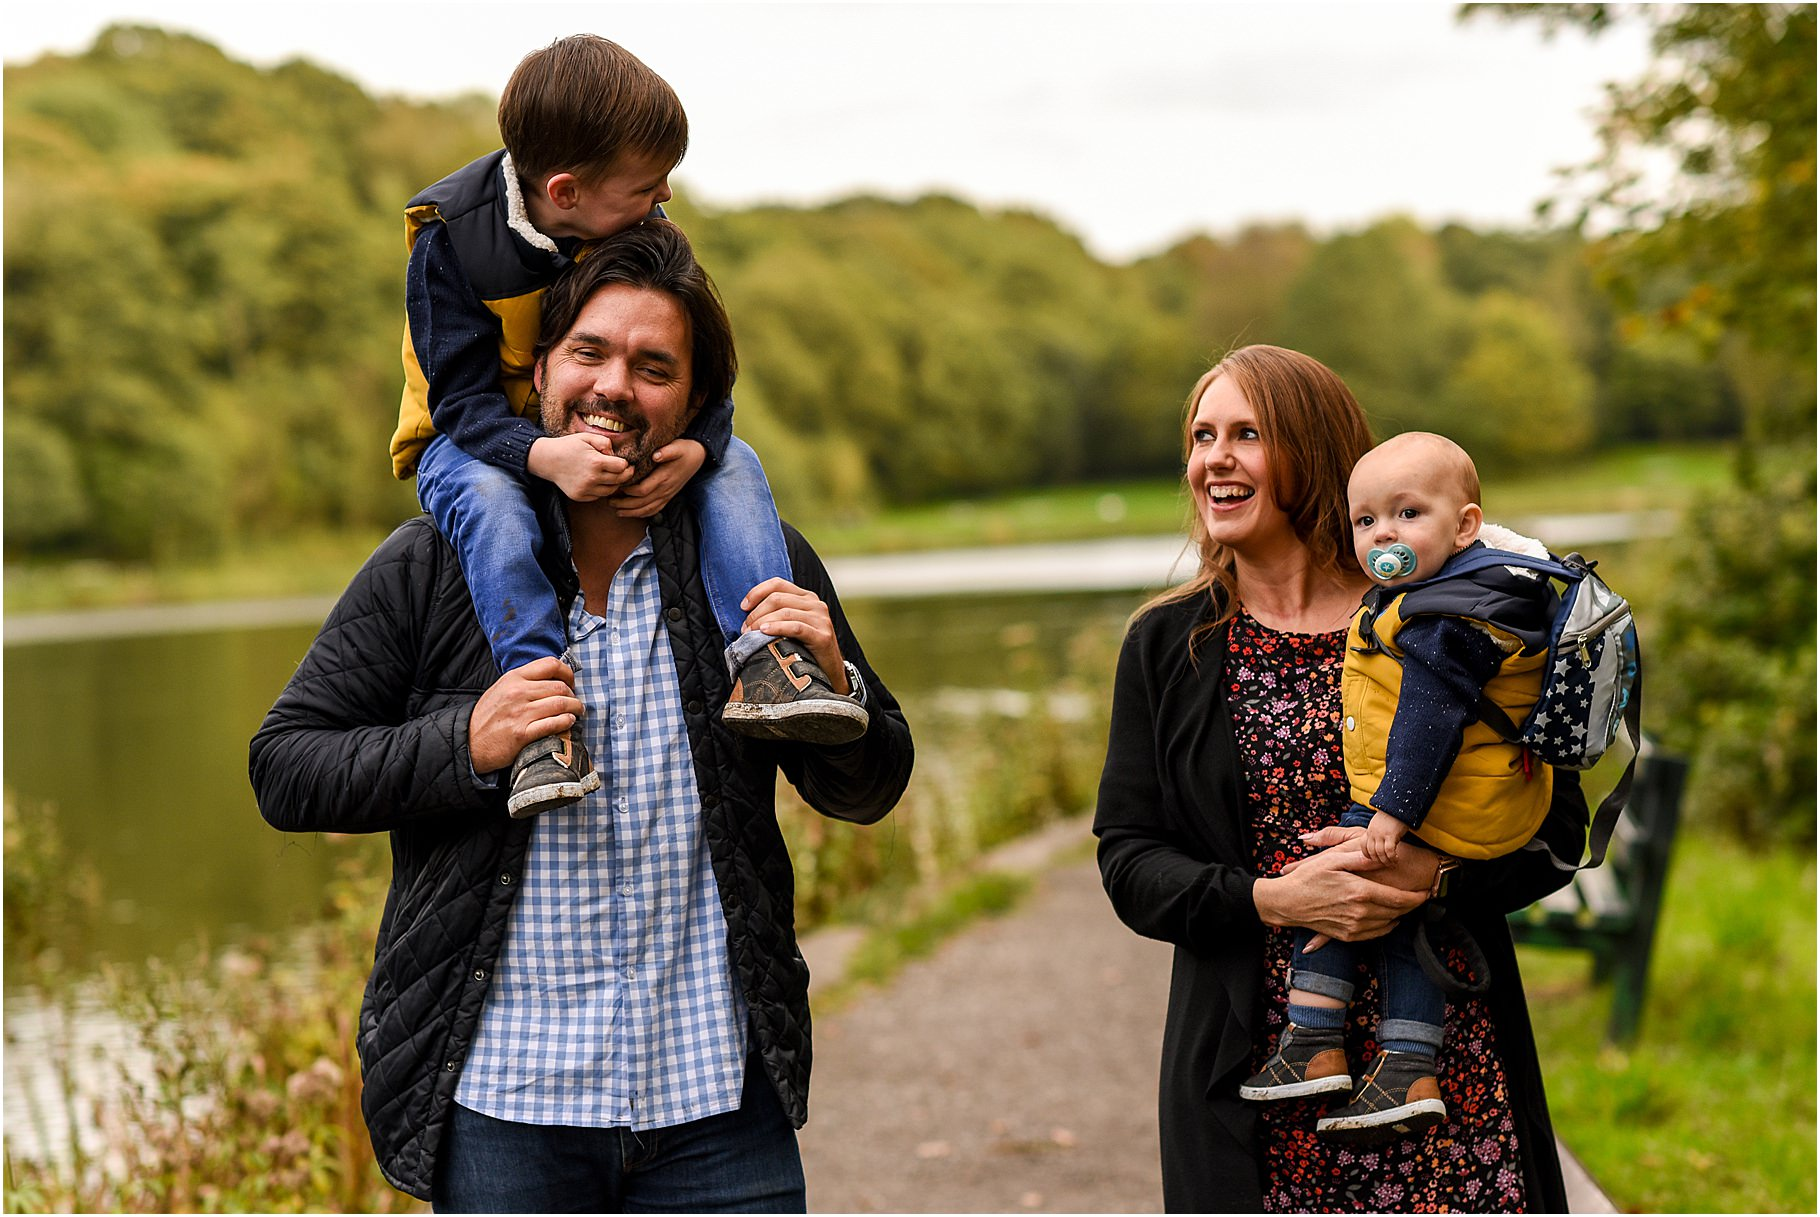 yarrow-valley-country-park-family-shoot - 33.jpg